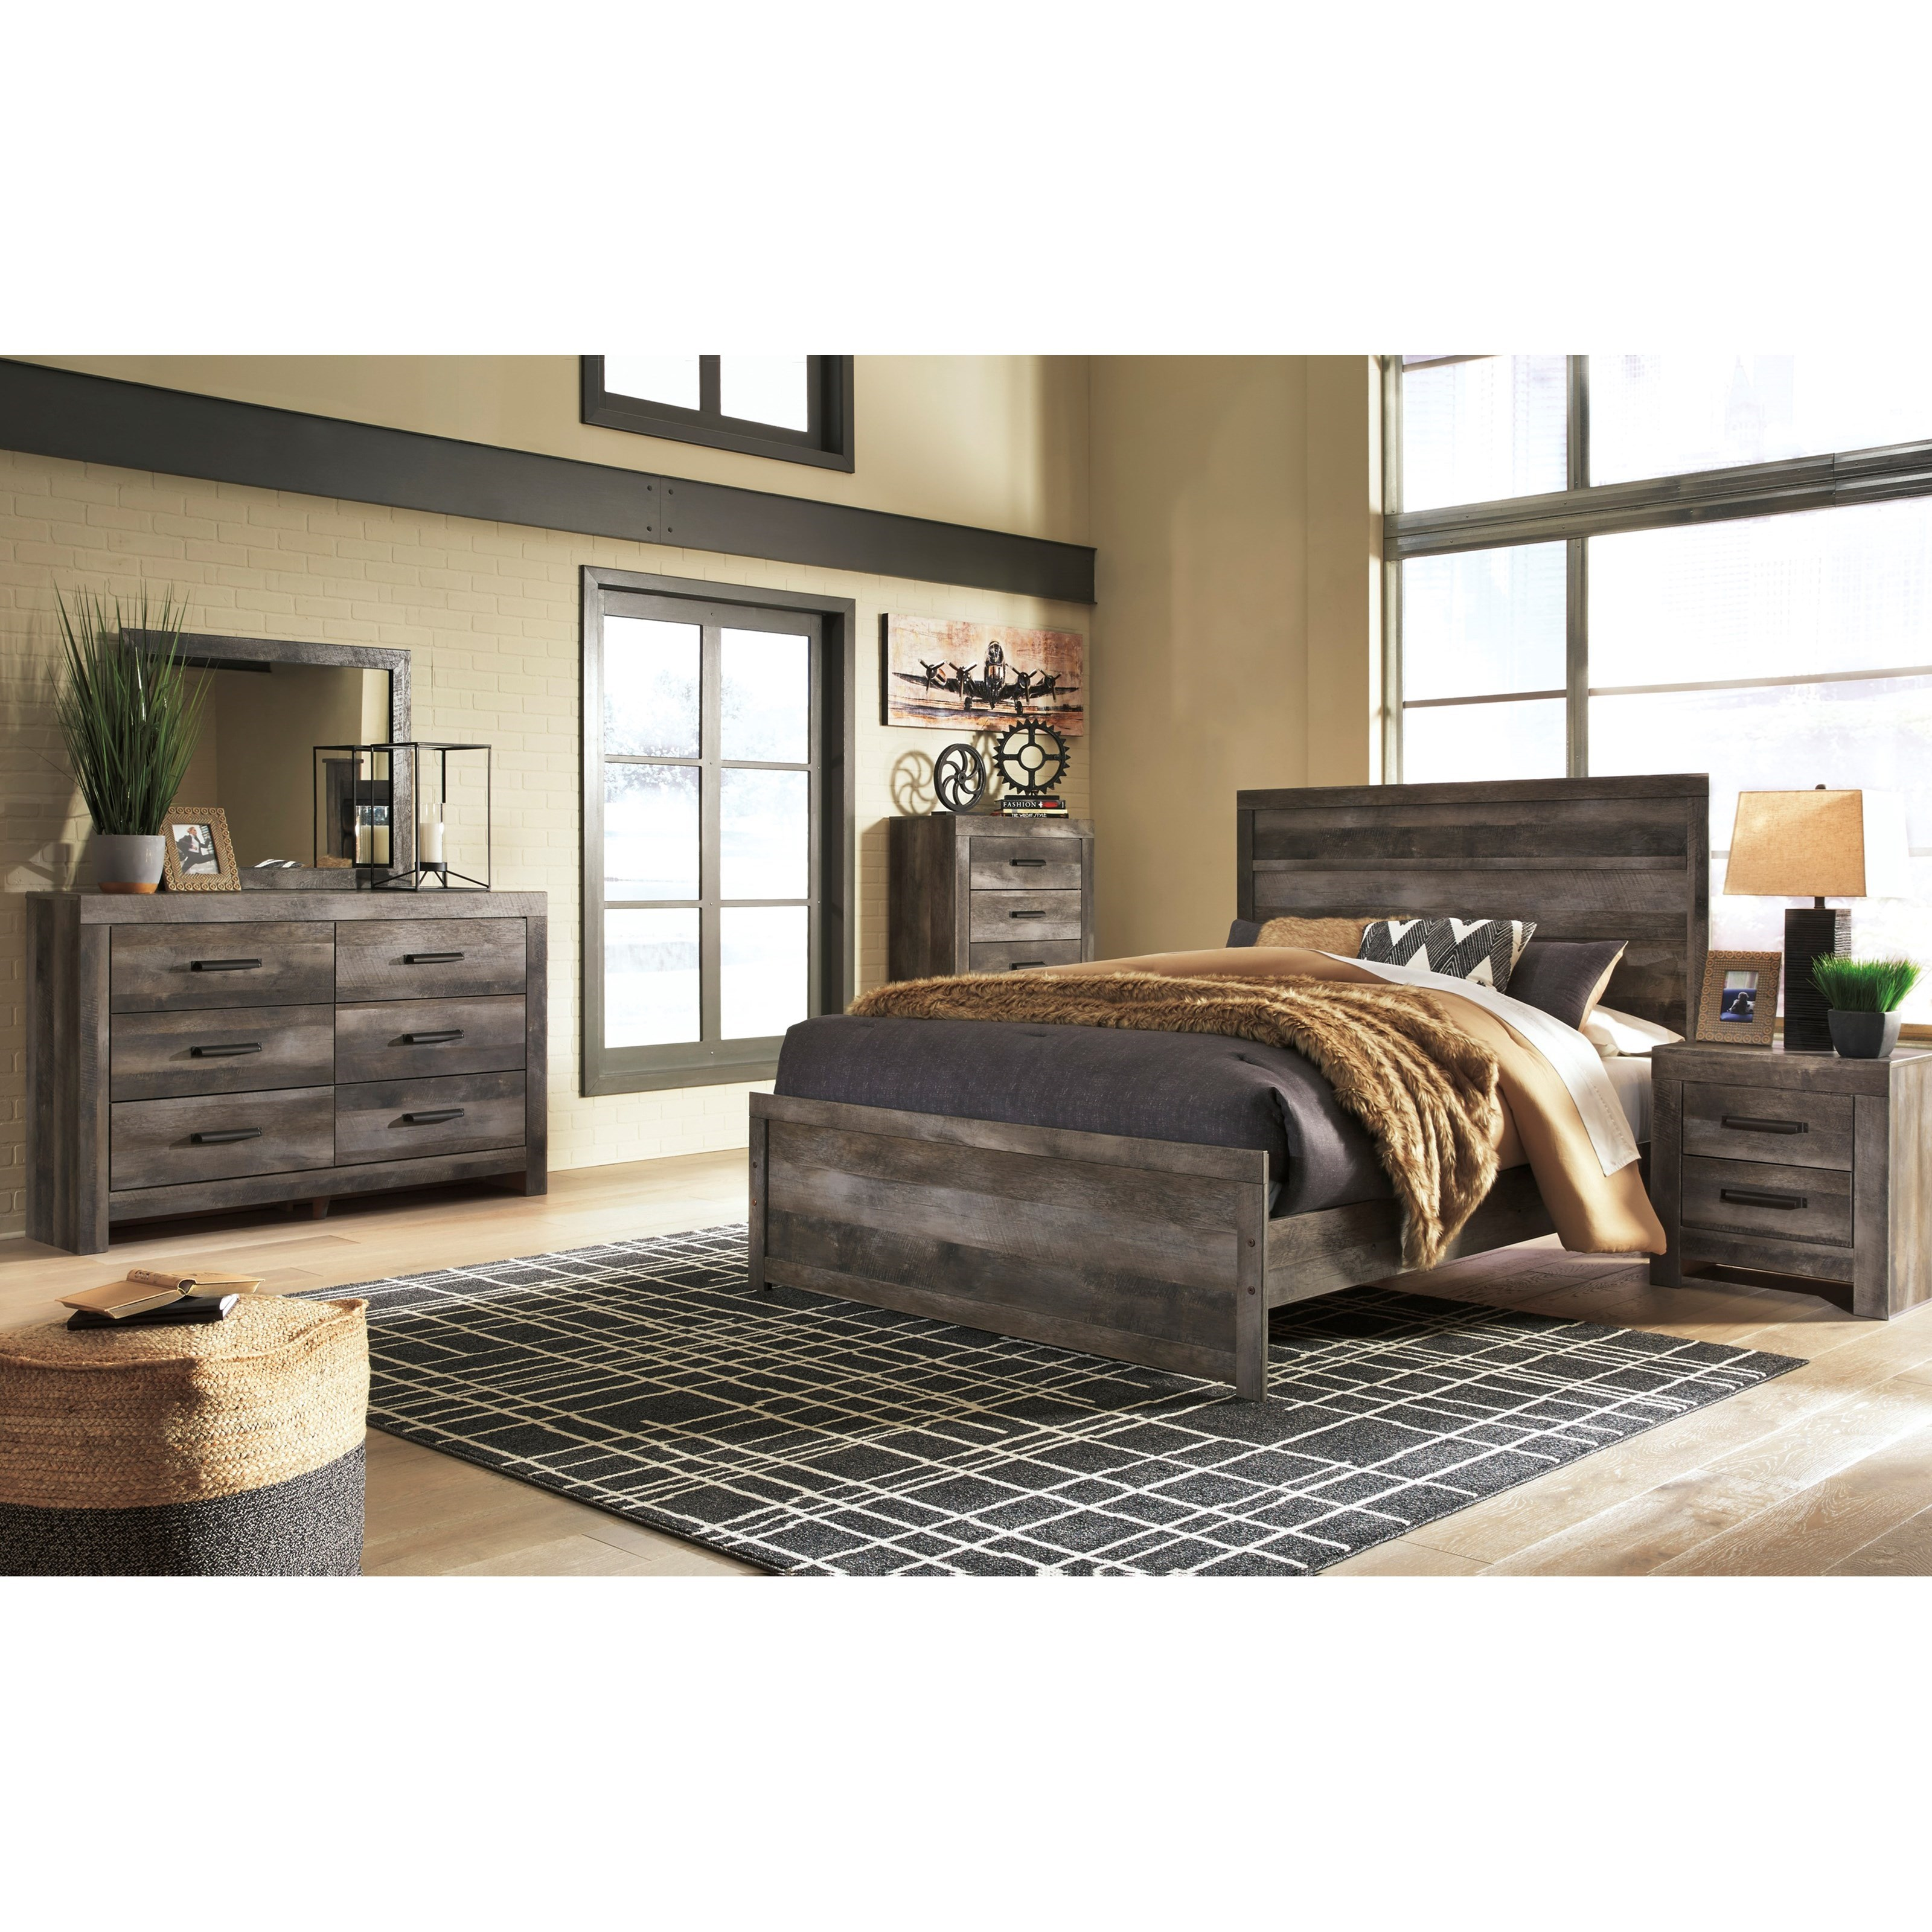 Wynnlow Queen Bedroom Group by Signature Design by Ashley at Nassau Furniture and Mattress